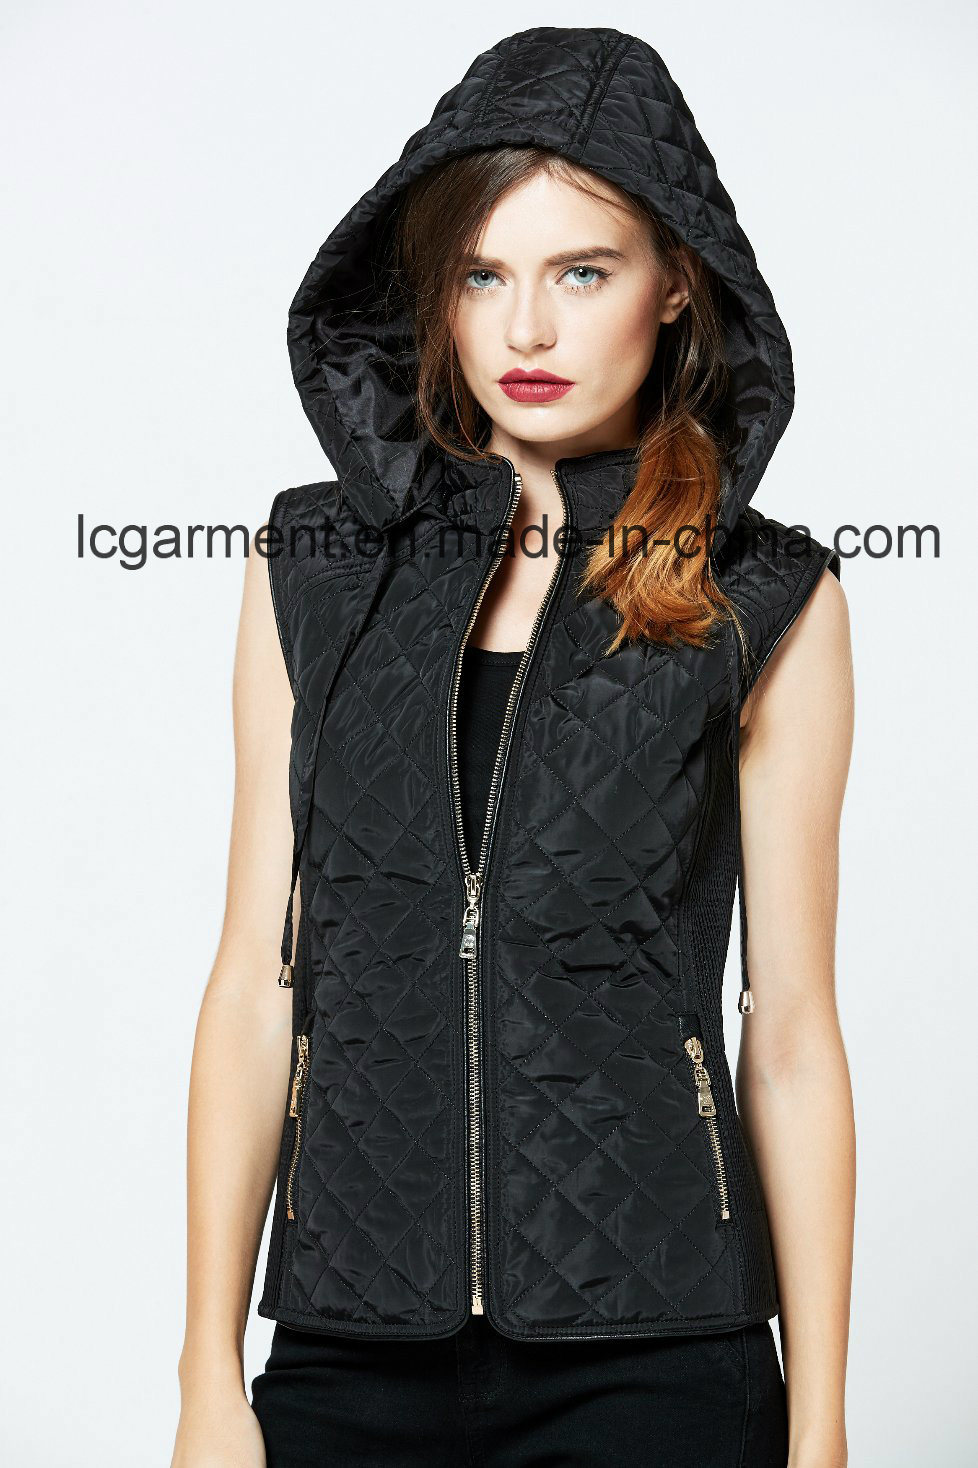 Hooded Winter Zipper Women Leather Vest Popular Design Women Waistcoat with Pockets